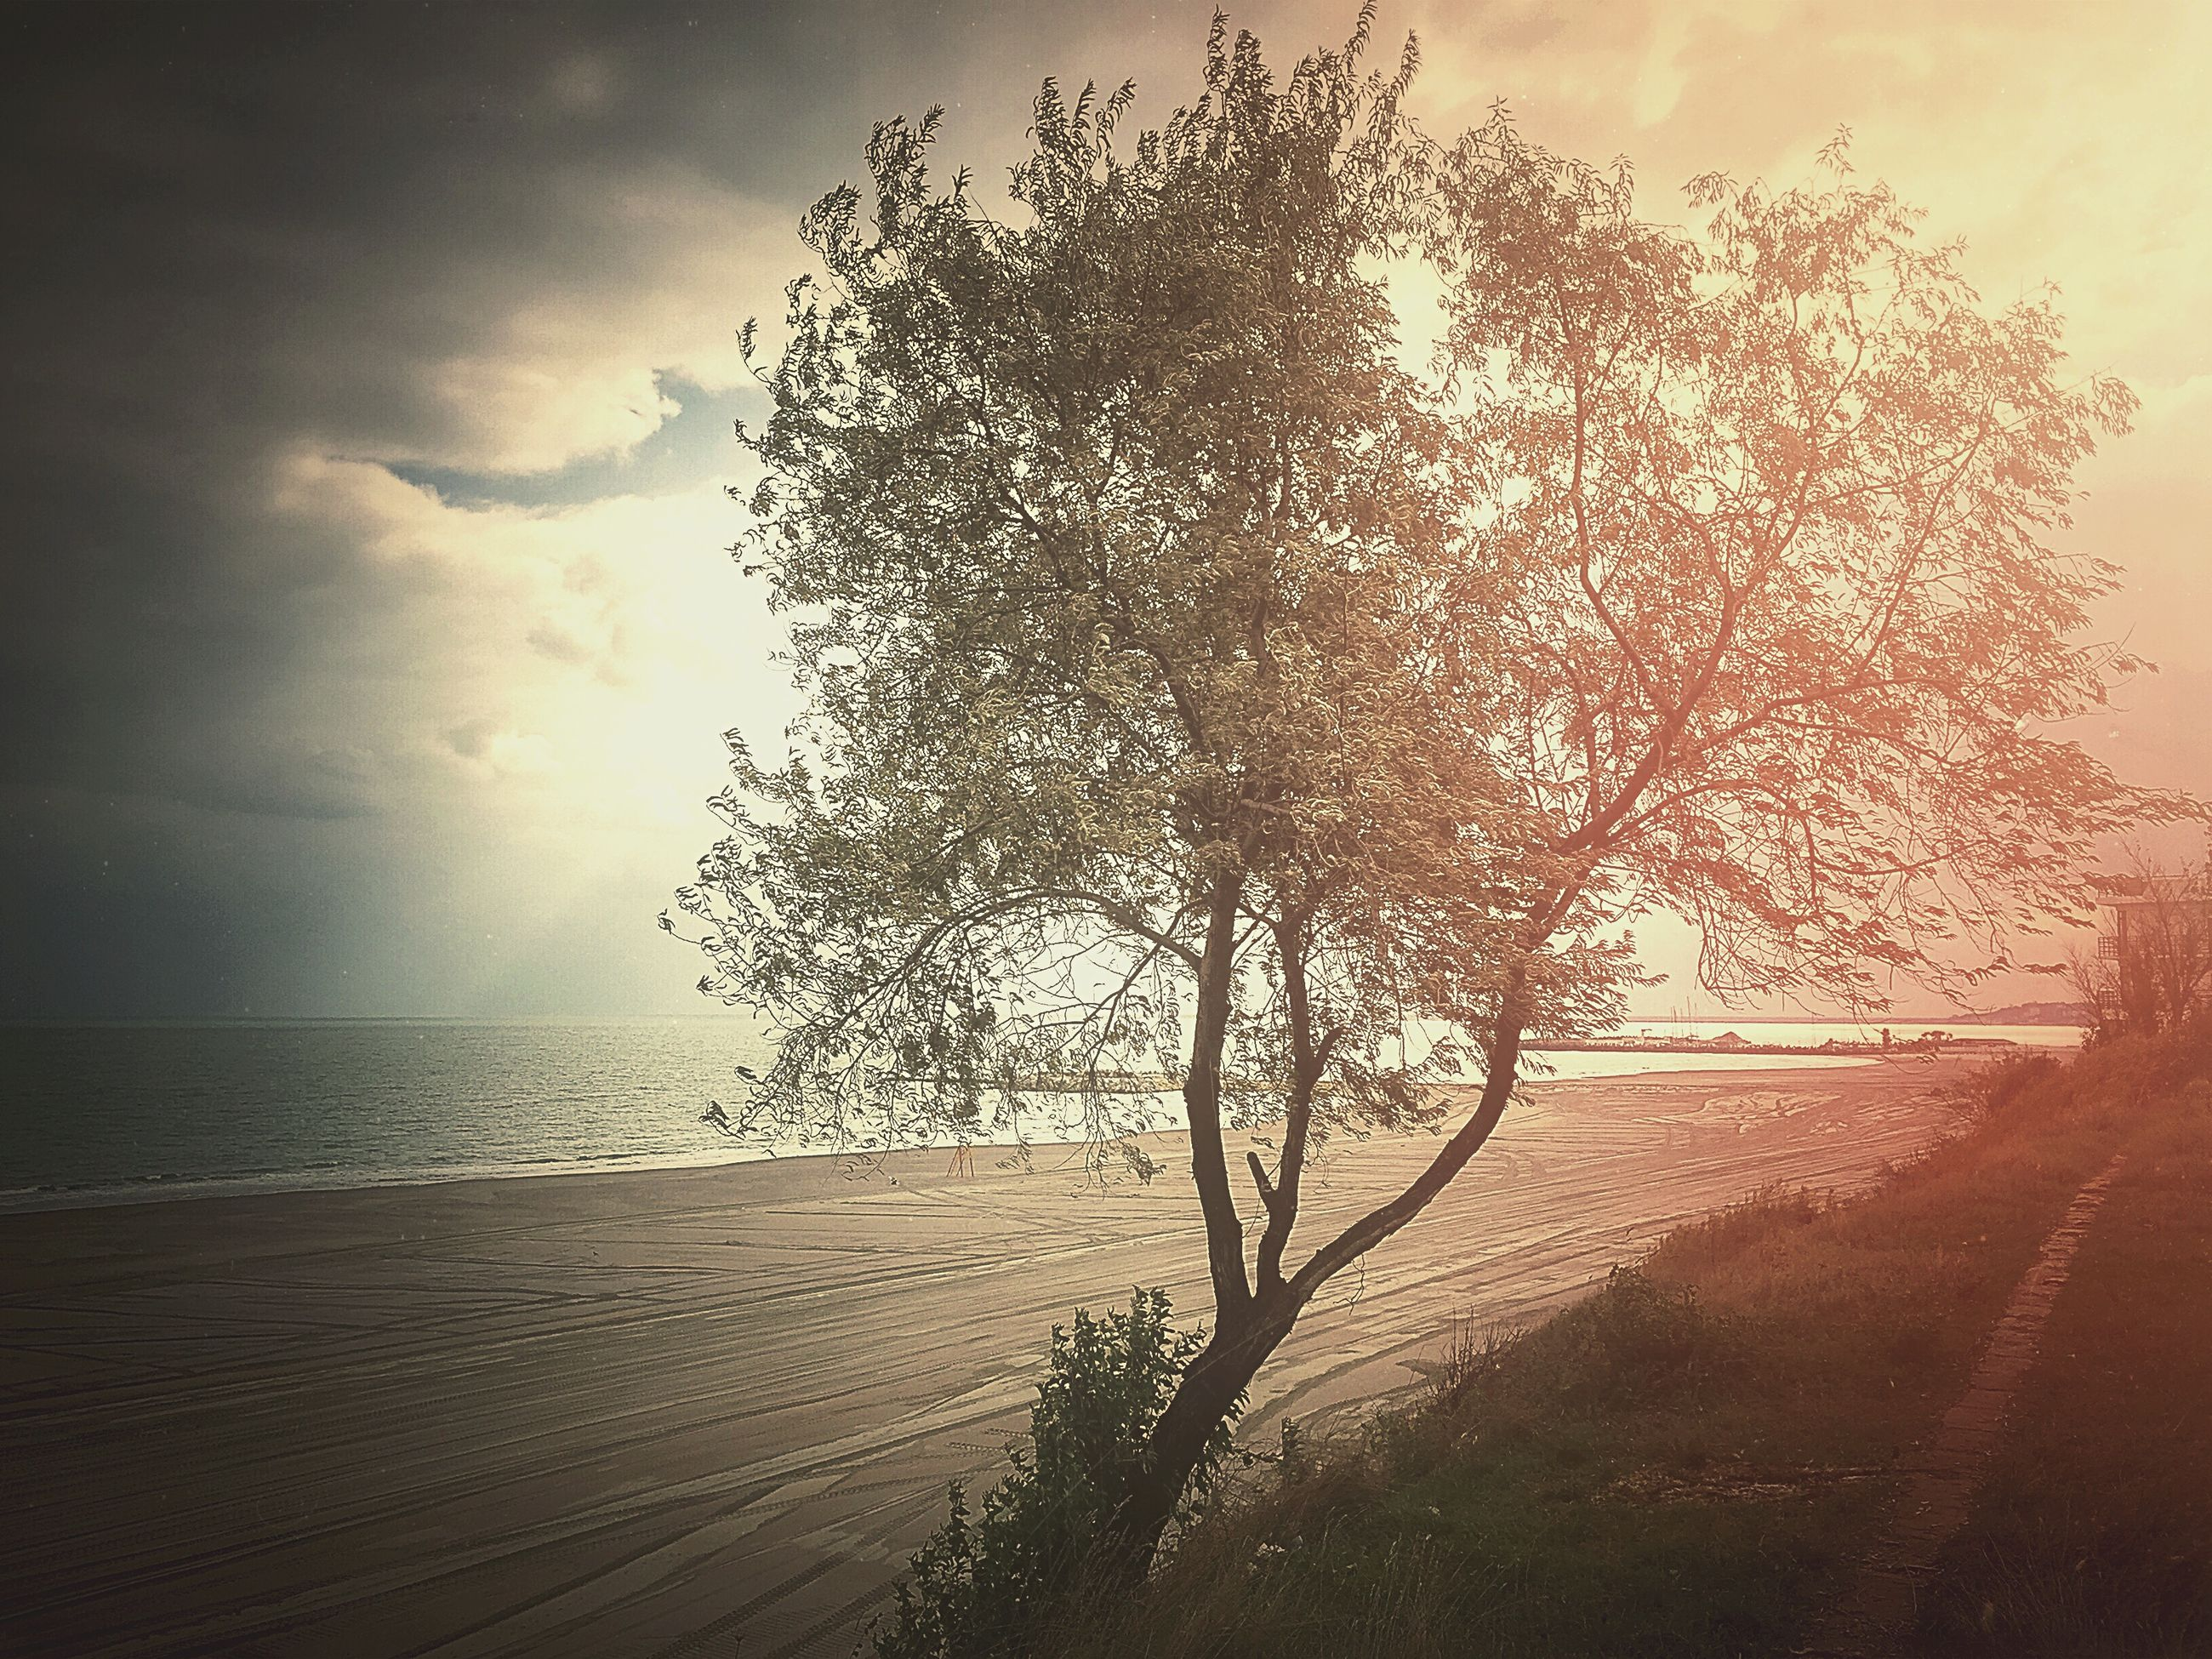 sky, tree, tranquility, tranquil scene, nature, beauty in nature, horizon over water, sea, scenics, cloud - sky, beach, sunset, growth, water, sunlight, branch, cloud, outdoors, no people, shore